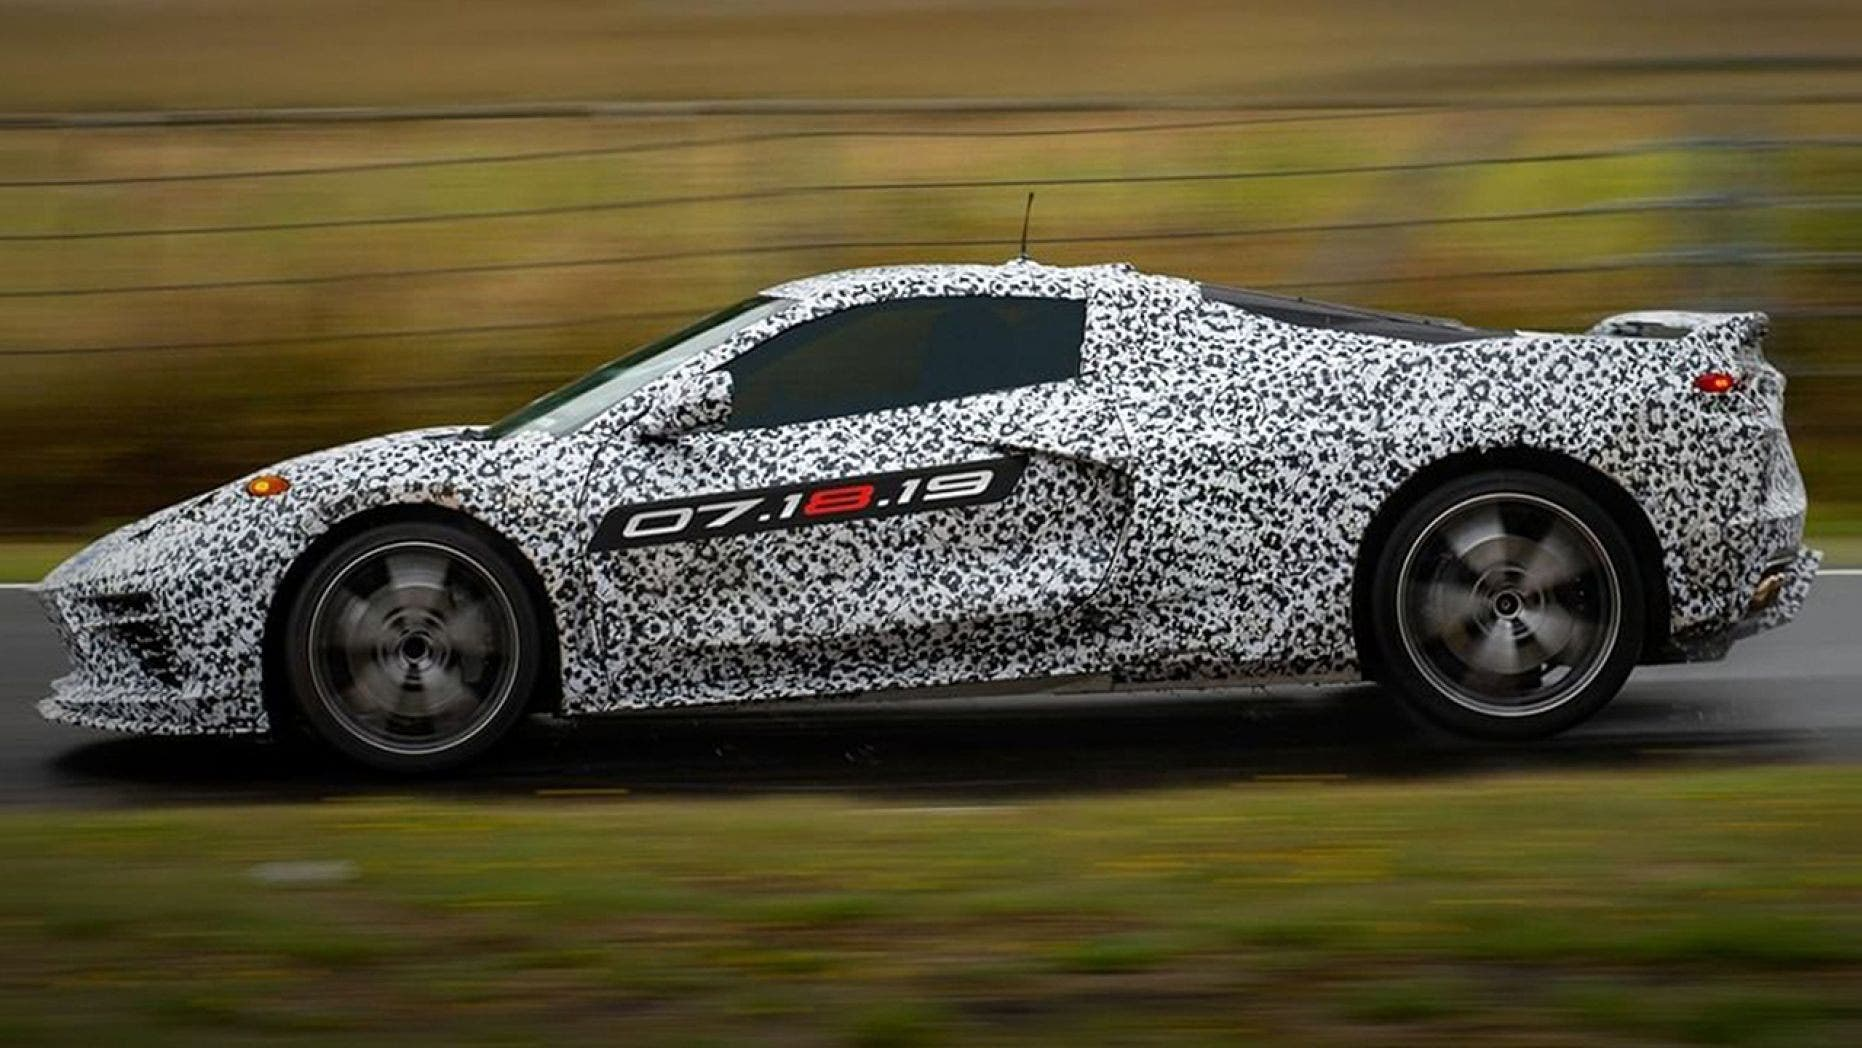 Mid engine Corvette